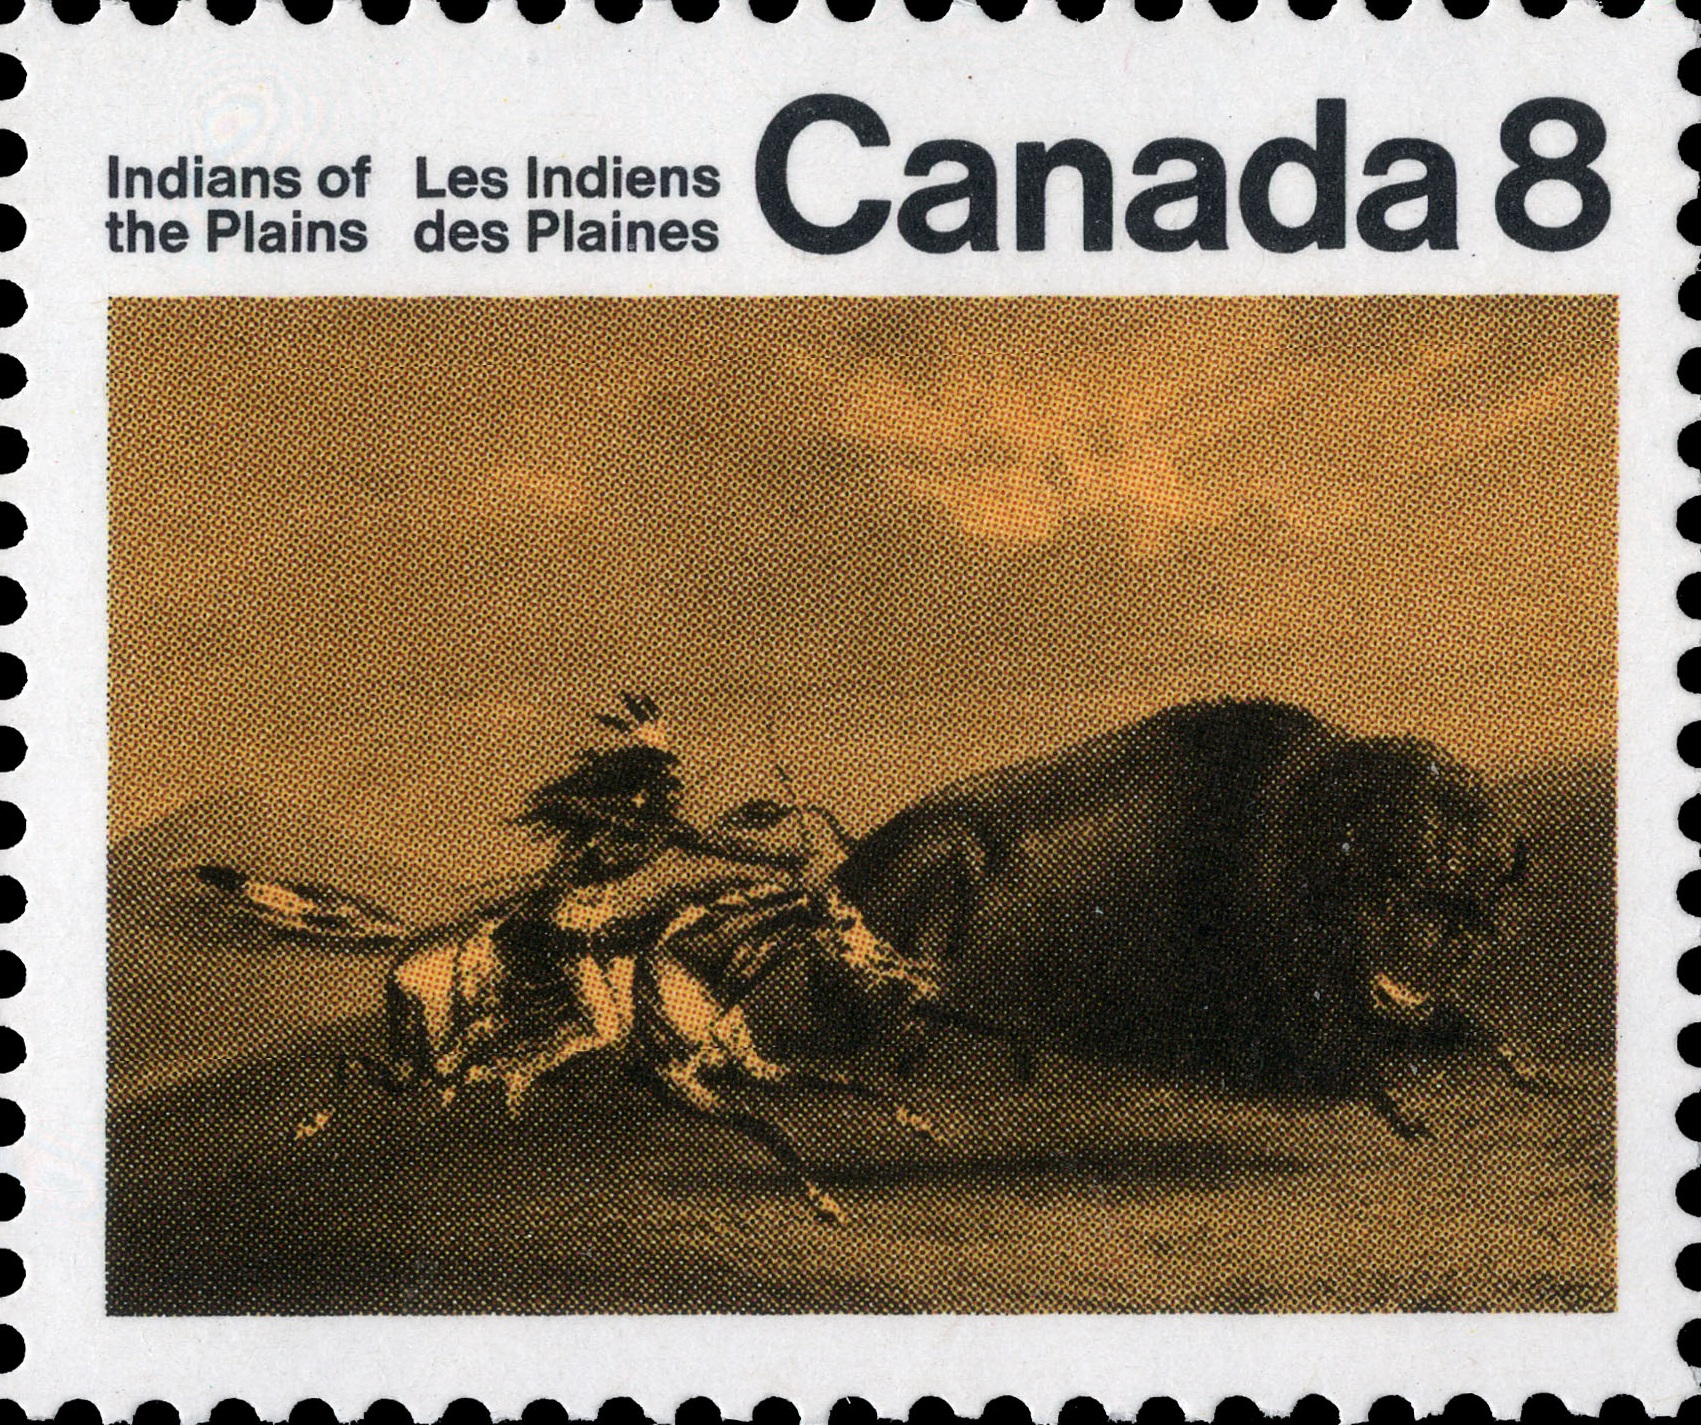 Buffalo Chase Canada Postage Stamp | Indians of Canada, Indians of the Plains